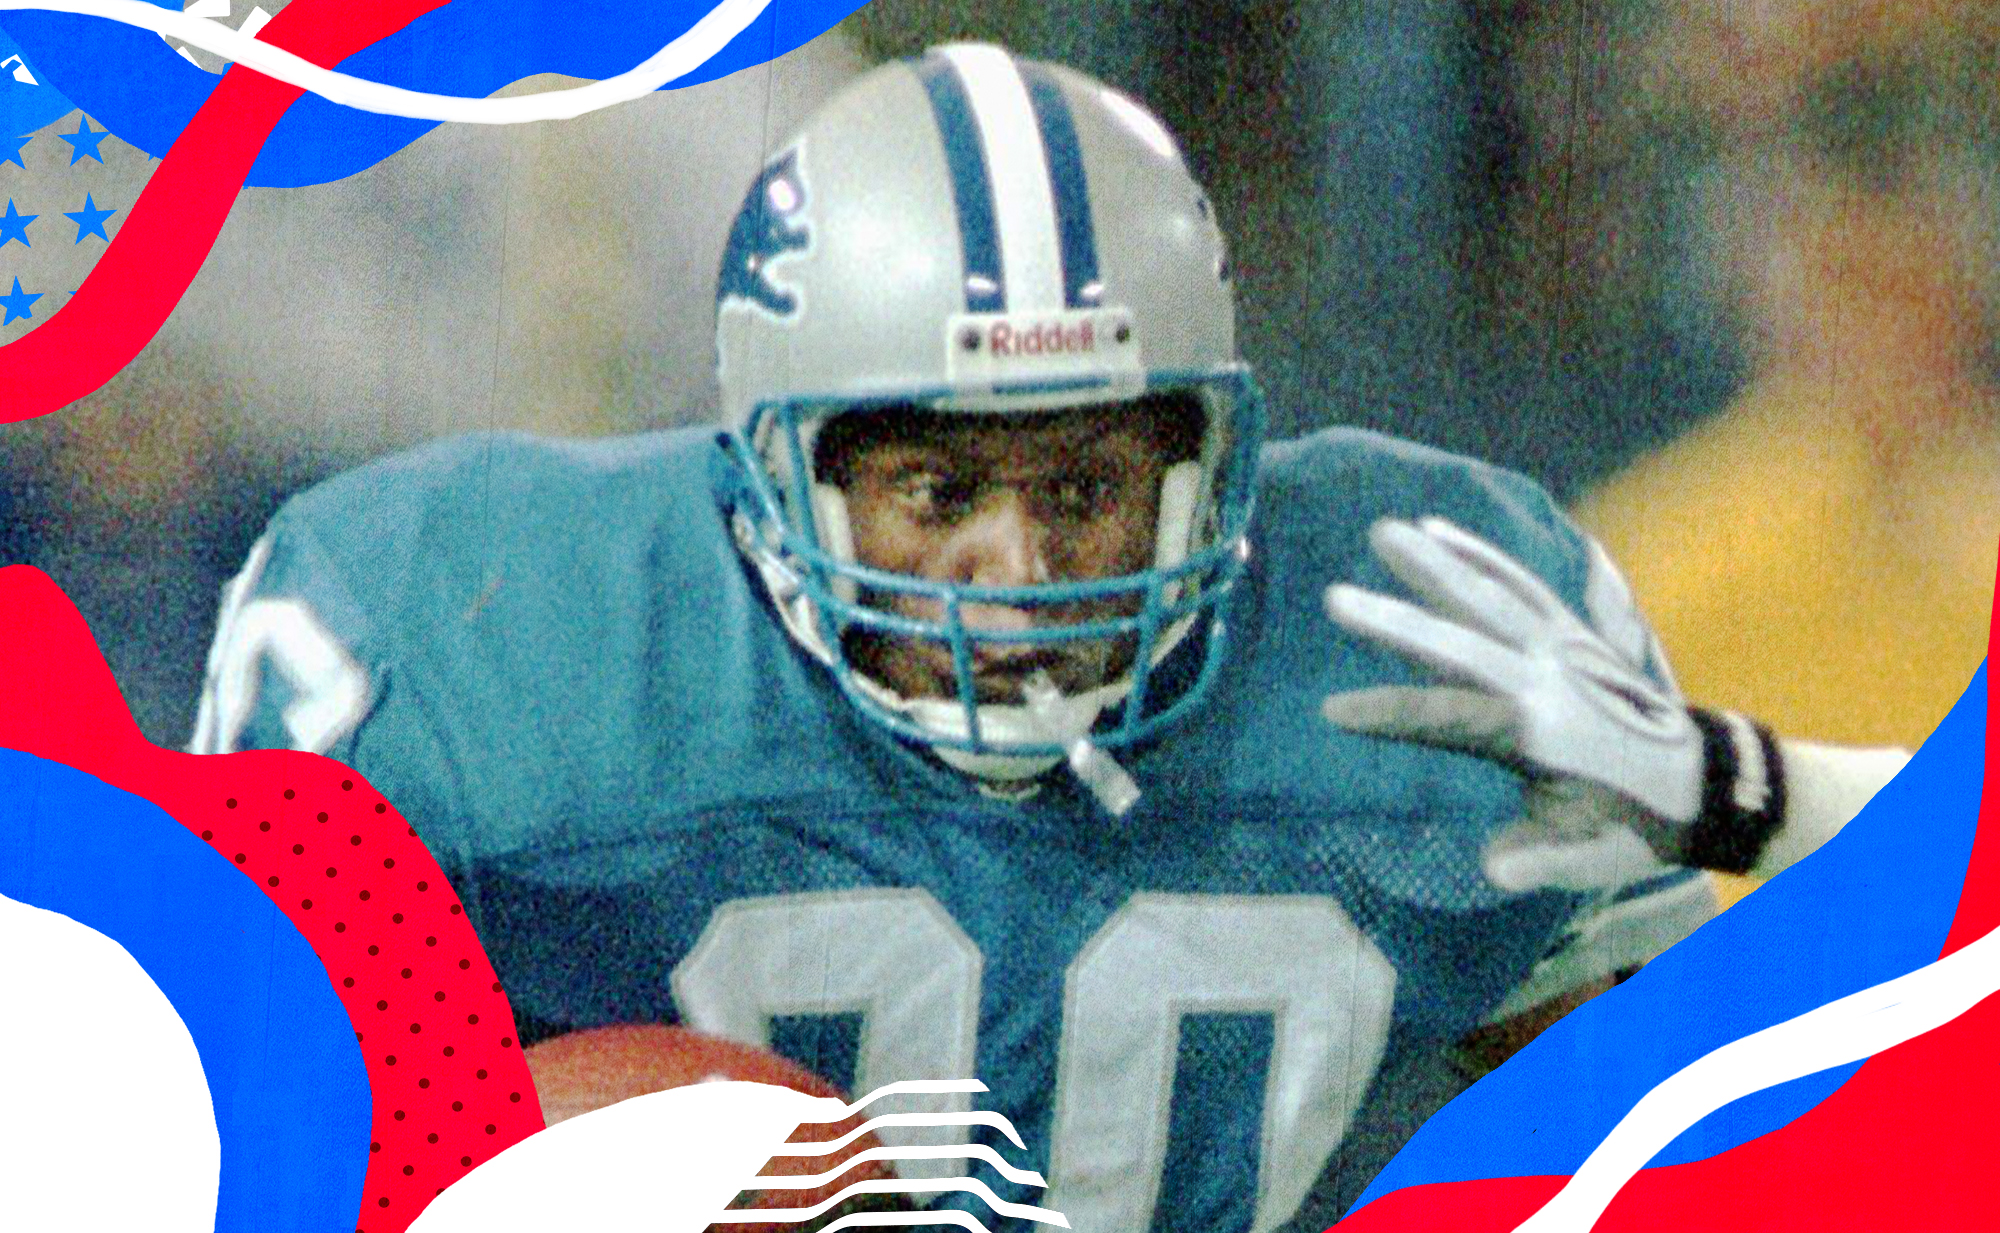 Happy 51st birthday to Barry Sanders, the greatest running back of all time